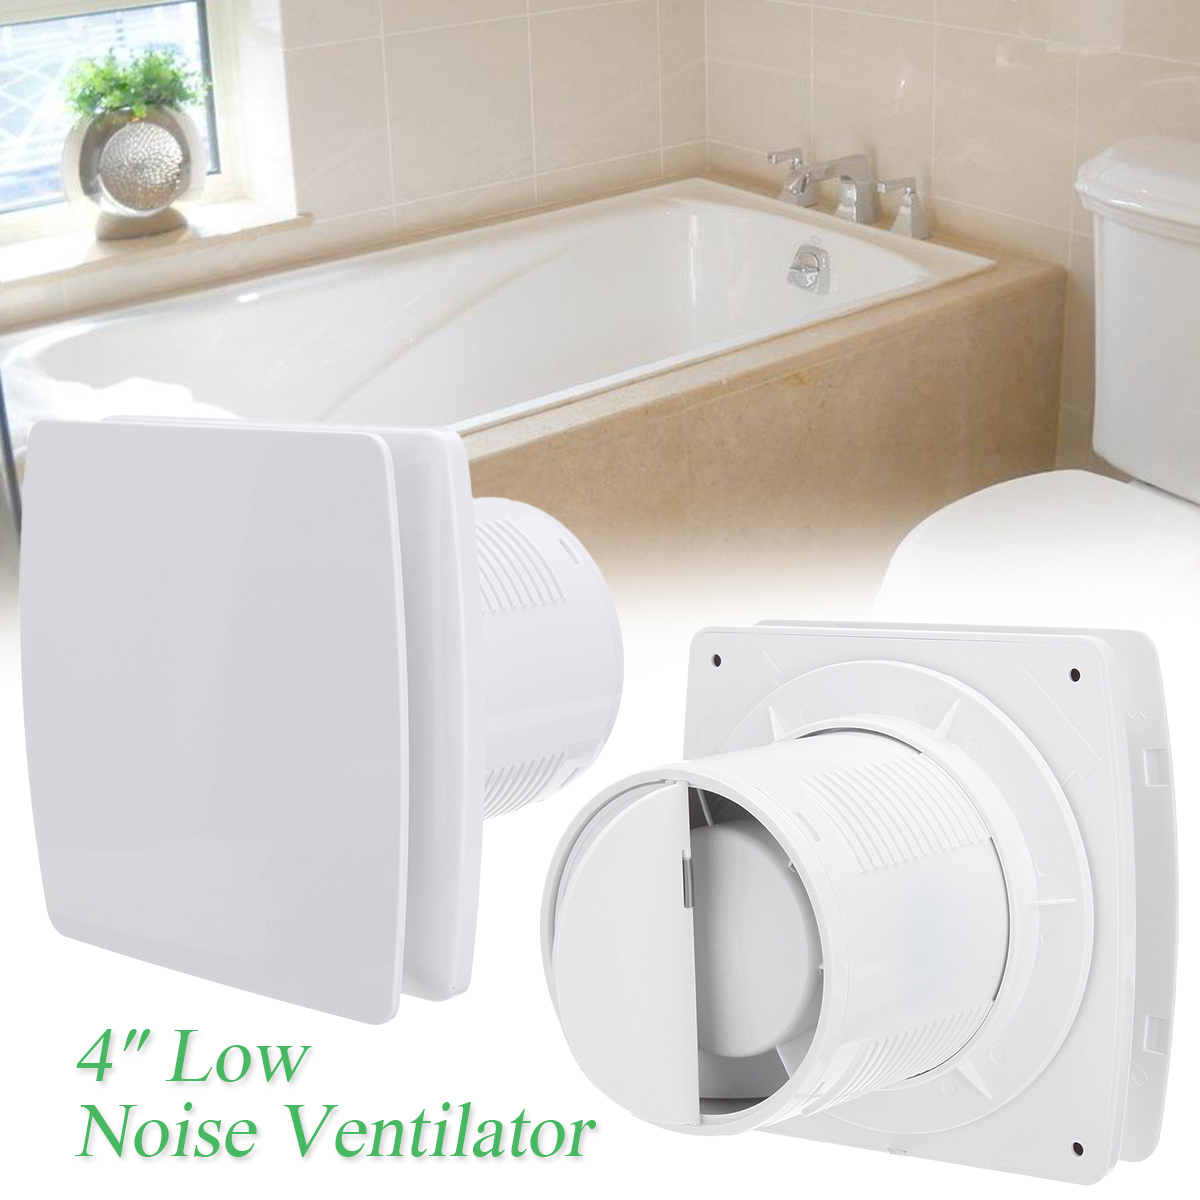 12W 4/6 Inch Home Bathroom Kitchen Bedroom Toilet Low Noise 220V Ventilator De Techo Fan Hotel Wall Silent Extractor Exhaust Fan